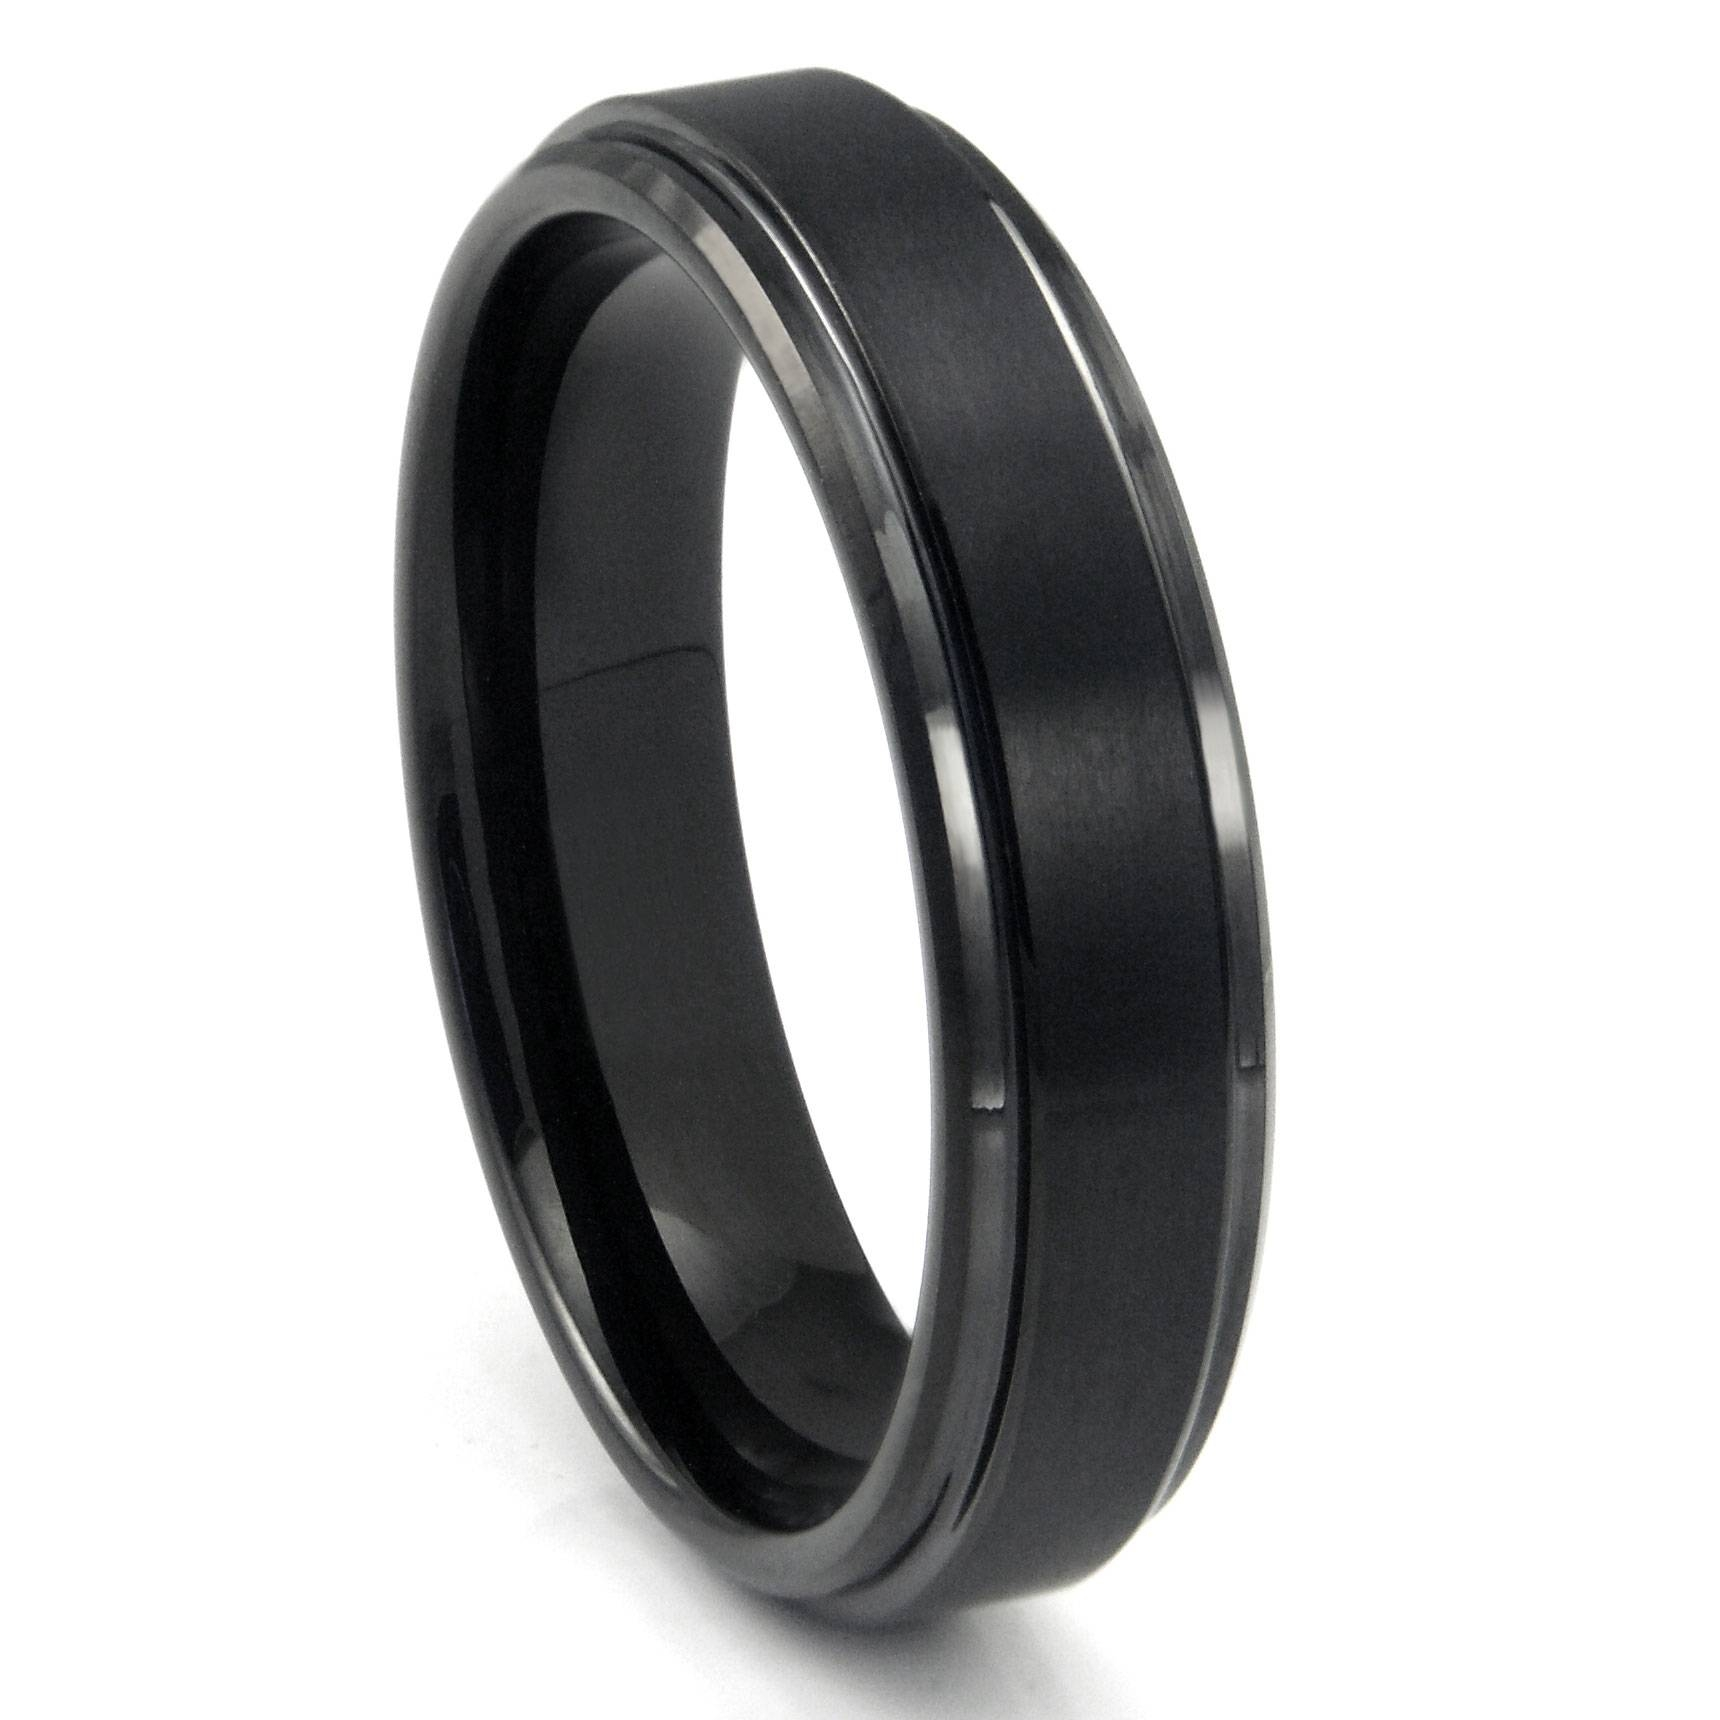 Mens Tungsten Rings & Wedding Bands – Titanium Kay Regarding Grey Tungsten Wedding Bands (View 17 of 20)